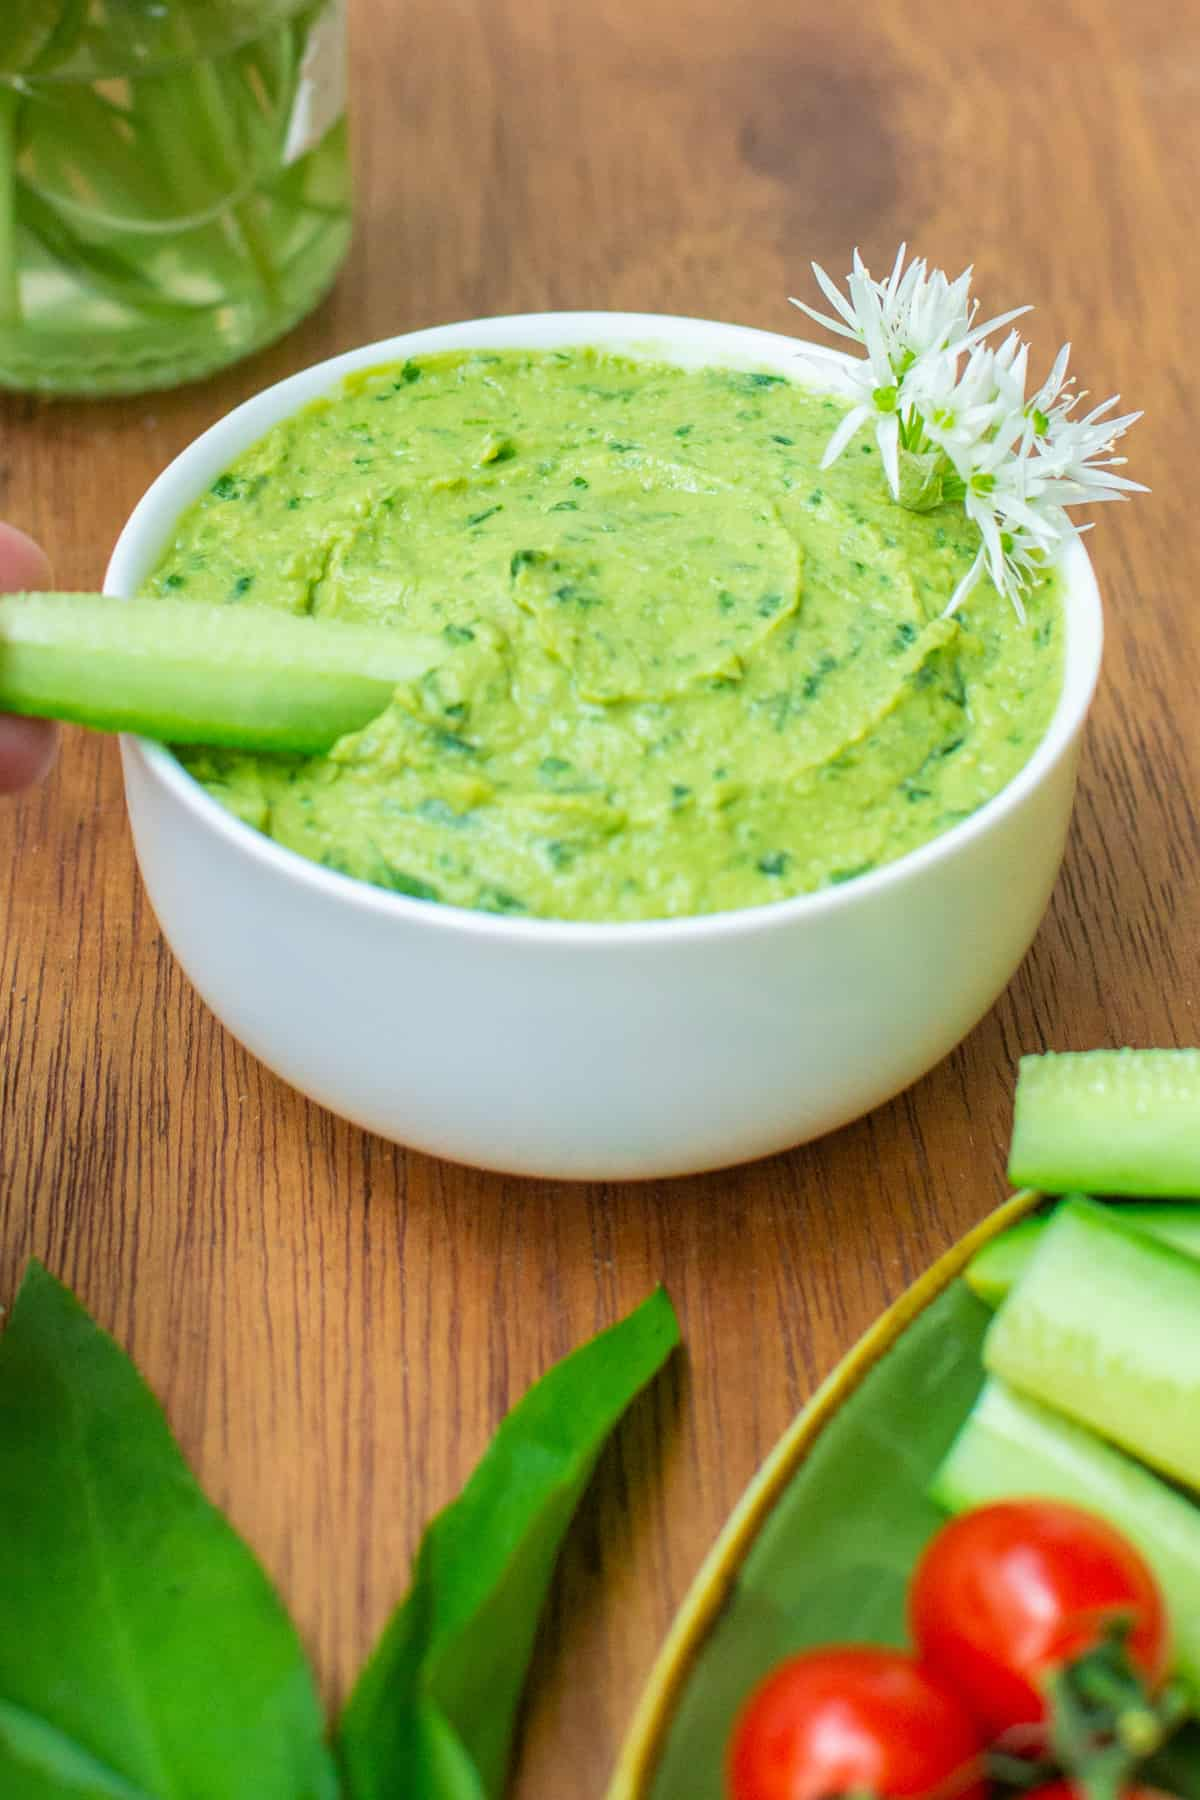 Dipping a stick of cucumber in the green hummus.